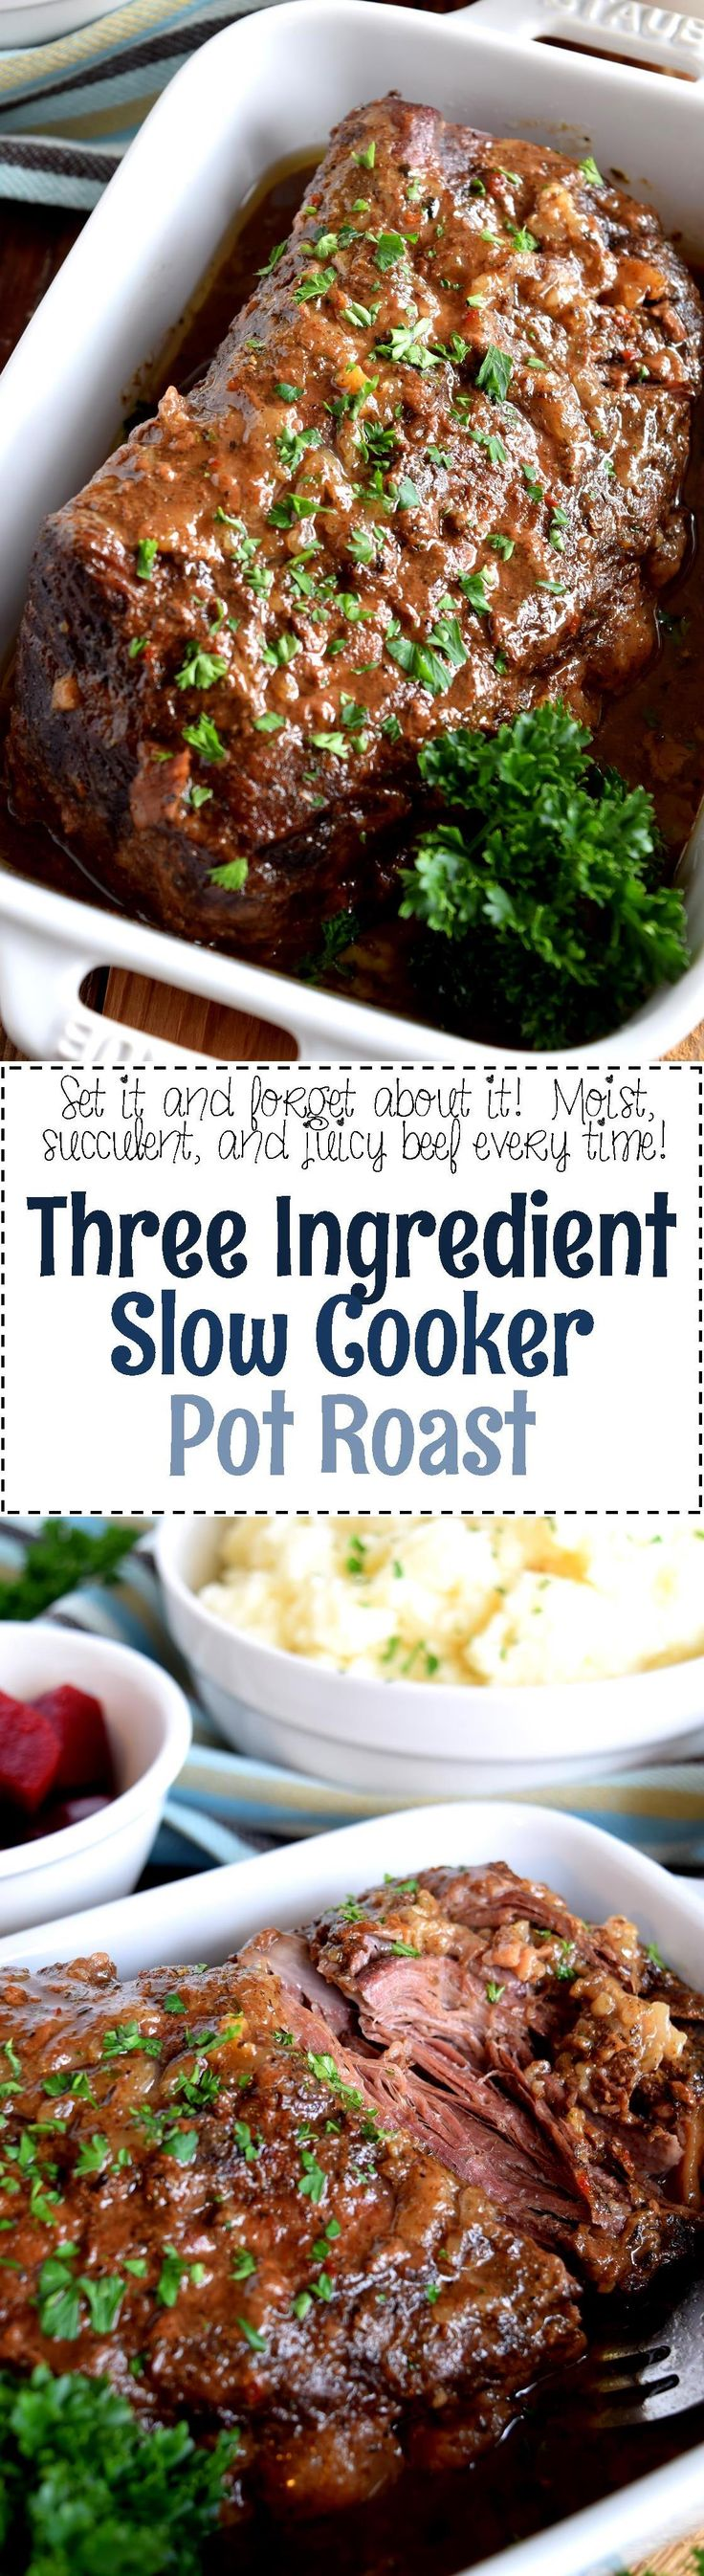 Three Ingredient Slow Cooker Pot Roast - Slow cooker-based meals are meant to be easy and affordable.  Three Ingredient Slow Cooker Pot Roast can't be beaten in terms of price and ease.  So delicious and tender, a great way to use cheaper cuts of beef.